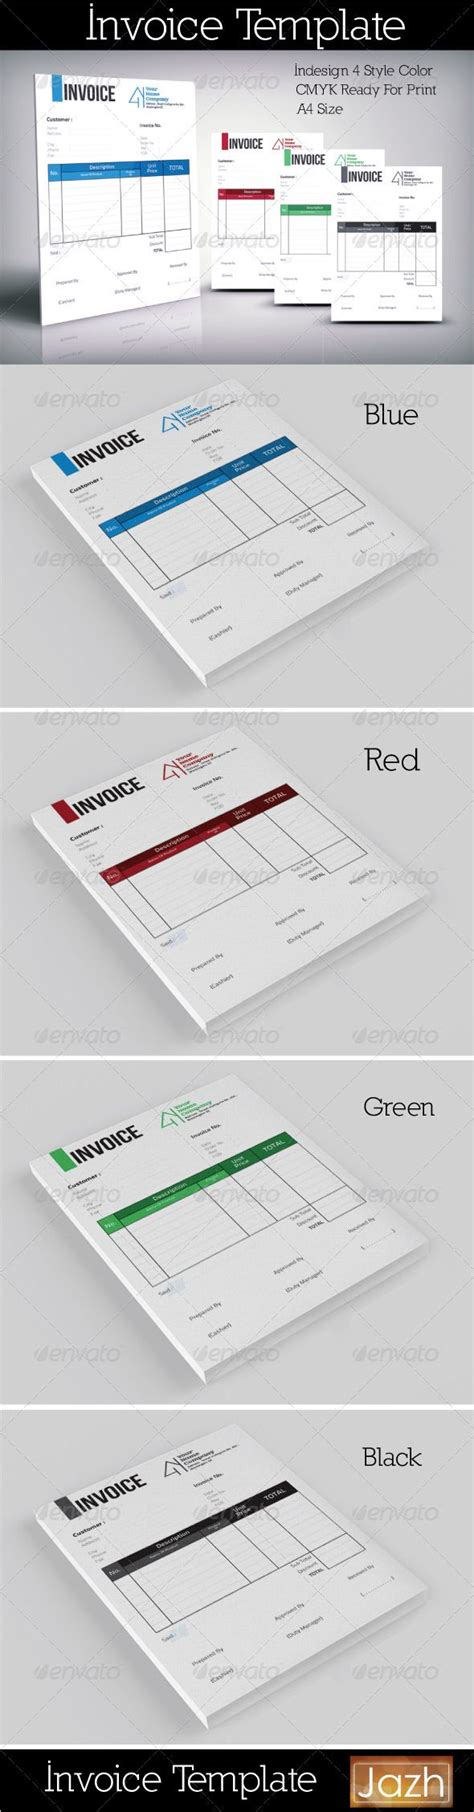 rate card template indesign 17 best images about print templates on fonts